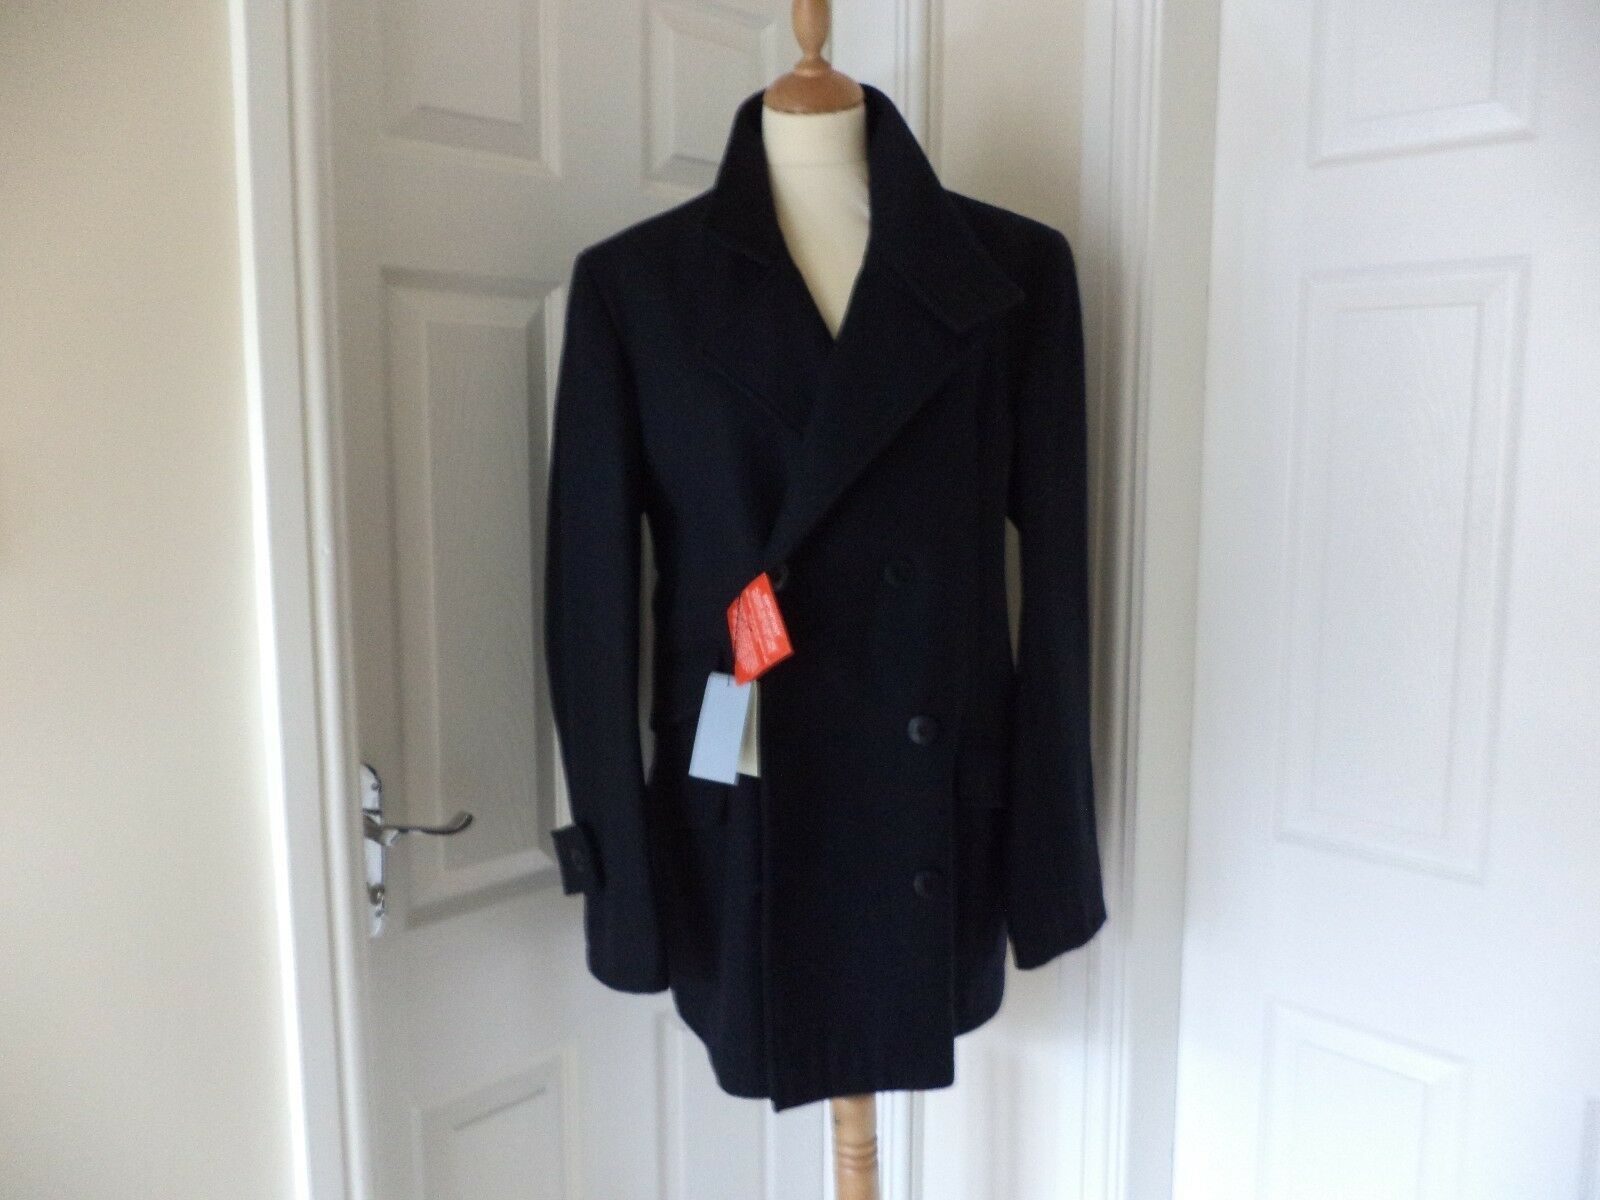 PETER WERTH WOOL REEFER COAT | NAVY | SIZE M | TW0-WAY COLLAR |   BNWT